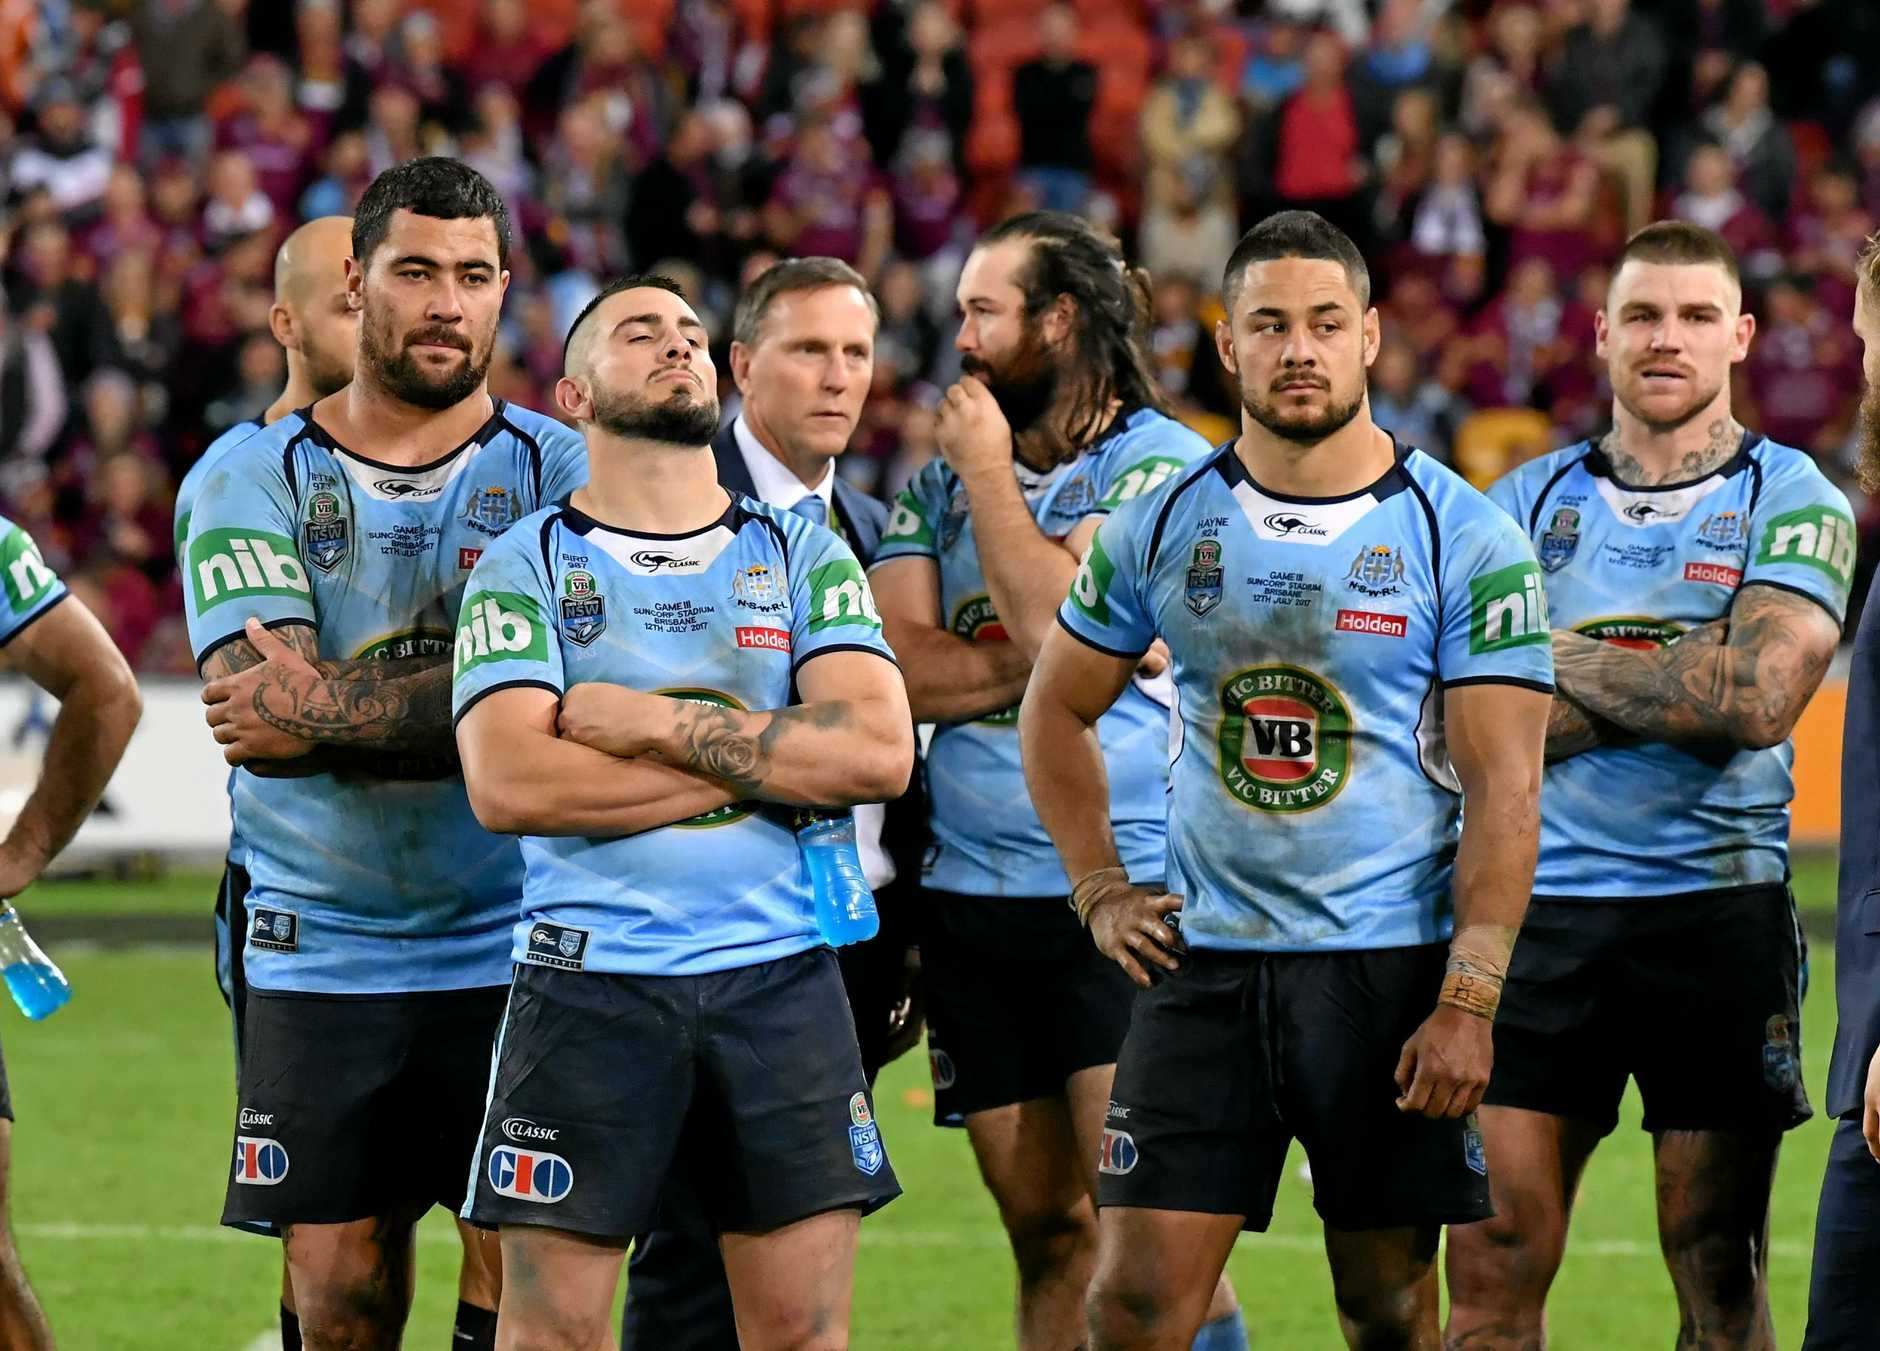 (Left to right) Andrew Fifita, Jack Bird and Jarryd Hayne of the Blues after losing the 2017 State of Origin series at Suncorp Stadium, Brisbane, Wednesday, July 12, 2017. (AAP Image/Darren England) NO ARCHIVING, EDITORIAL USE ONLY